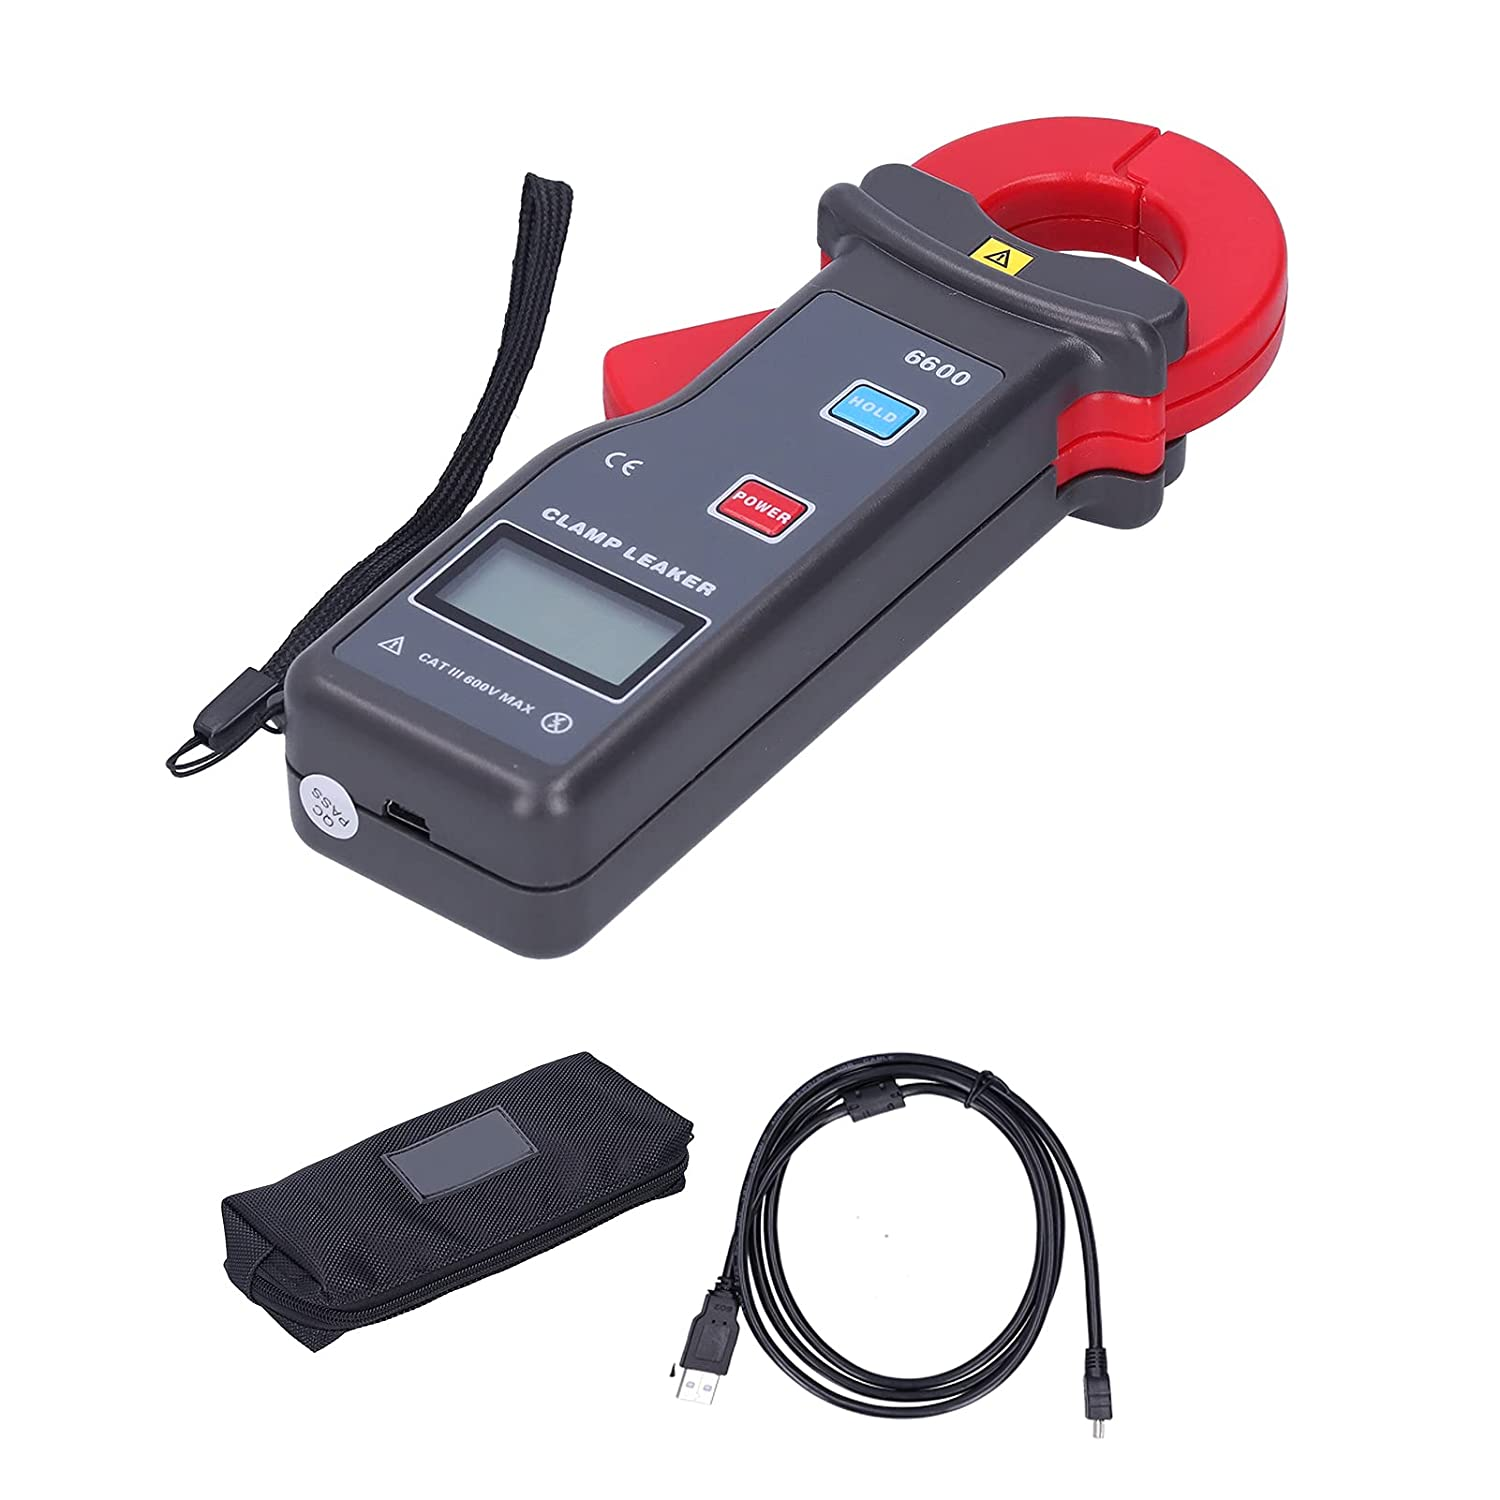 Leakage Current Excellent Clamp AC ETCR‑6600 Outlet SALE 0m Meter